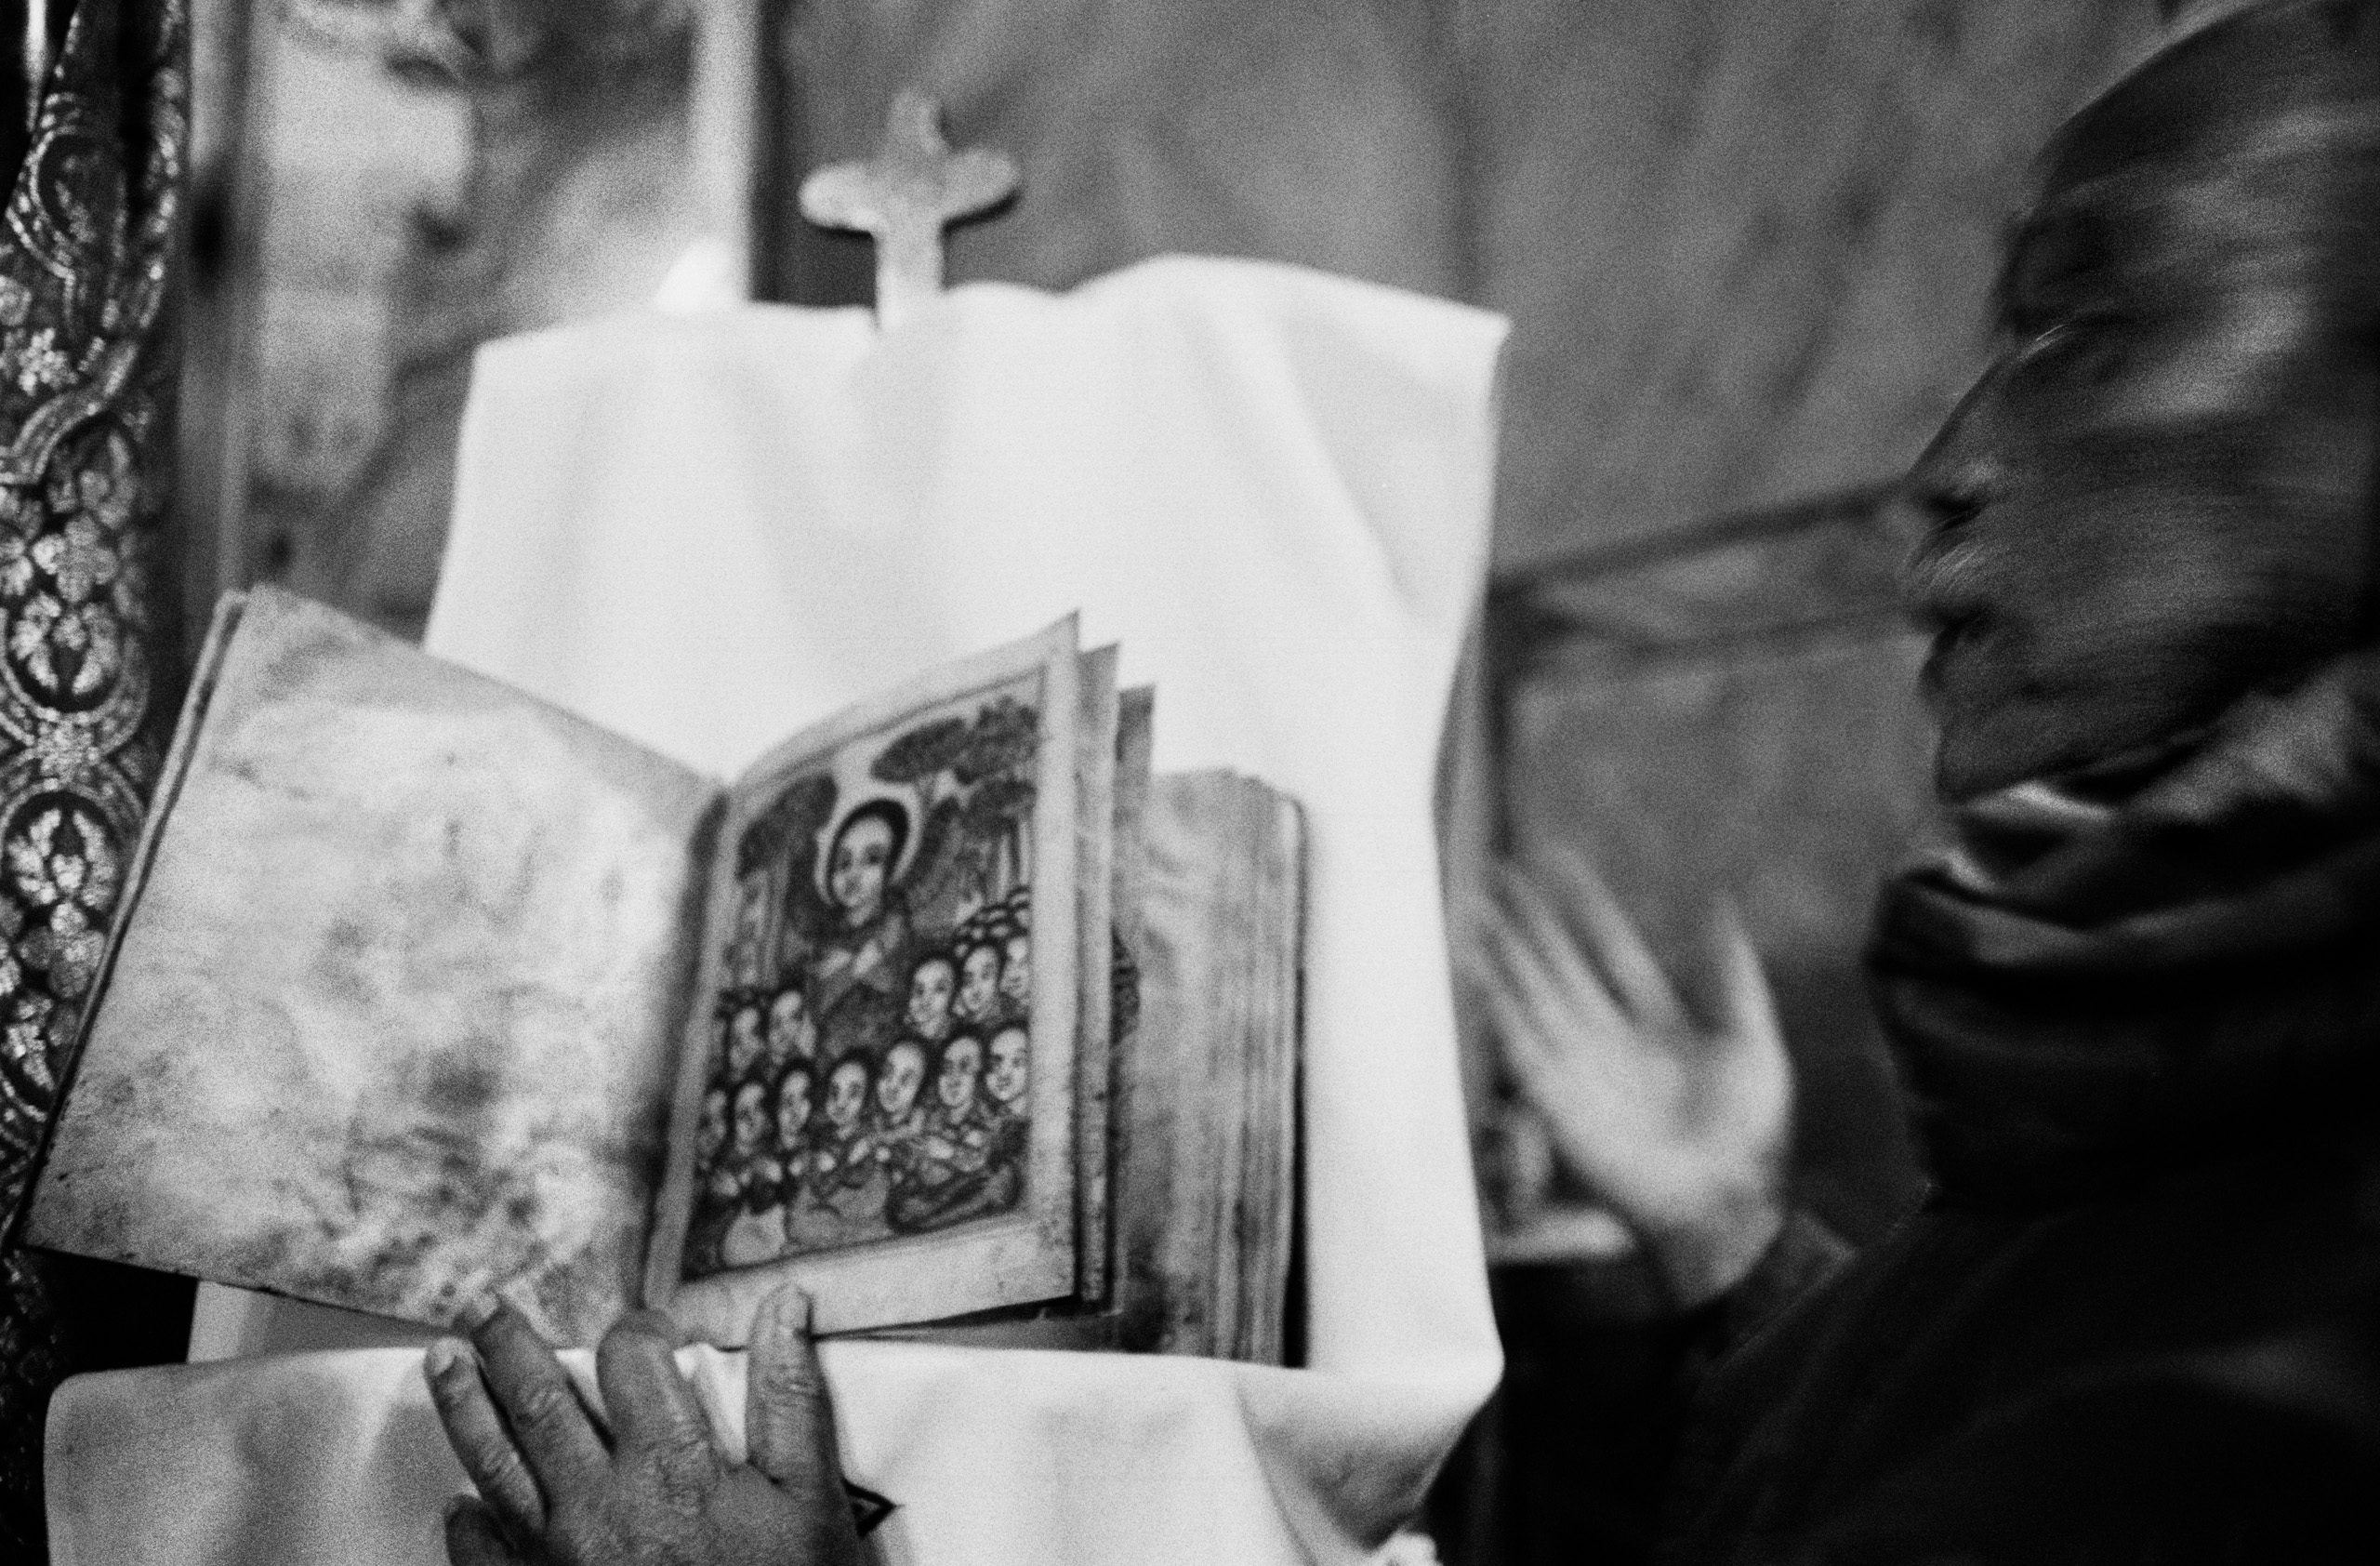 Jerusalem. The guardian of an Ethiopian church showing an ancient copy of the Bible. The Christian community includes Catholics, Orthodox Christians, Egyptian and Ethiopian Coptics between Damascus gate and Jaffa gate. December 2012.